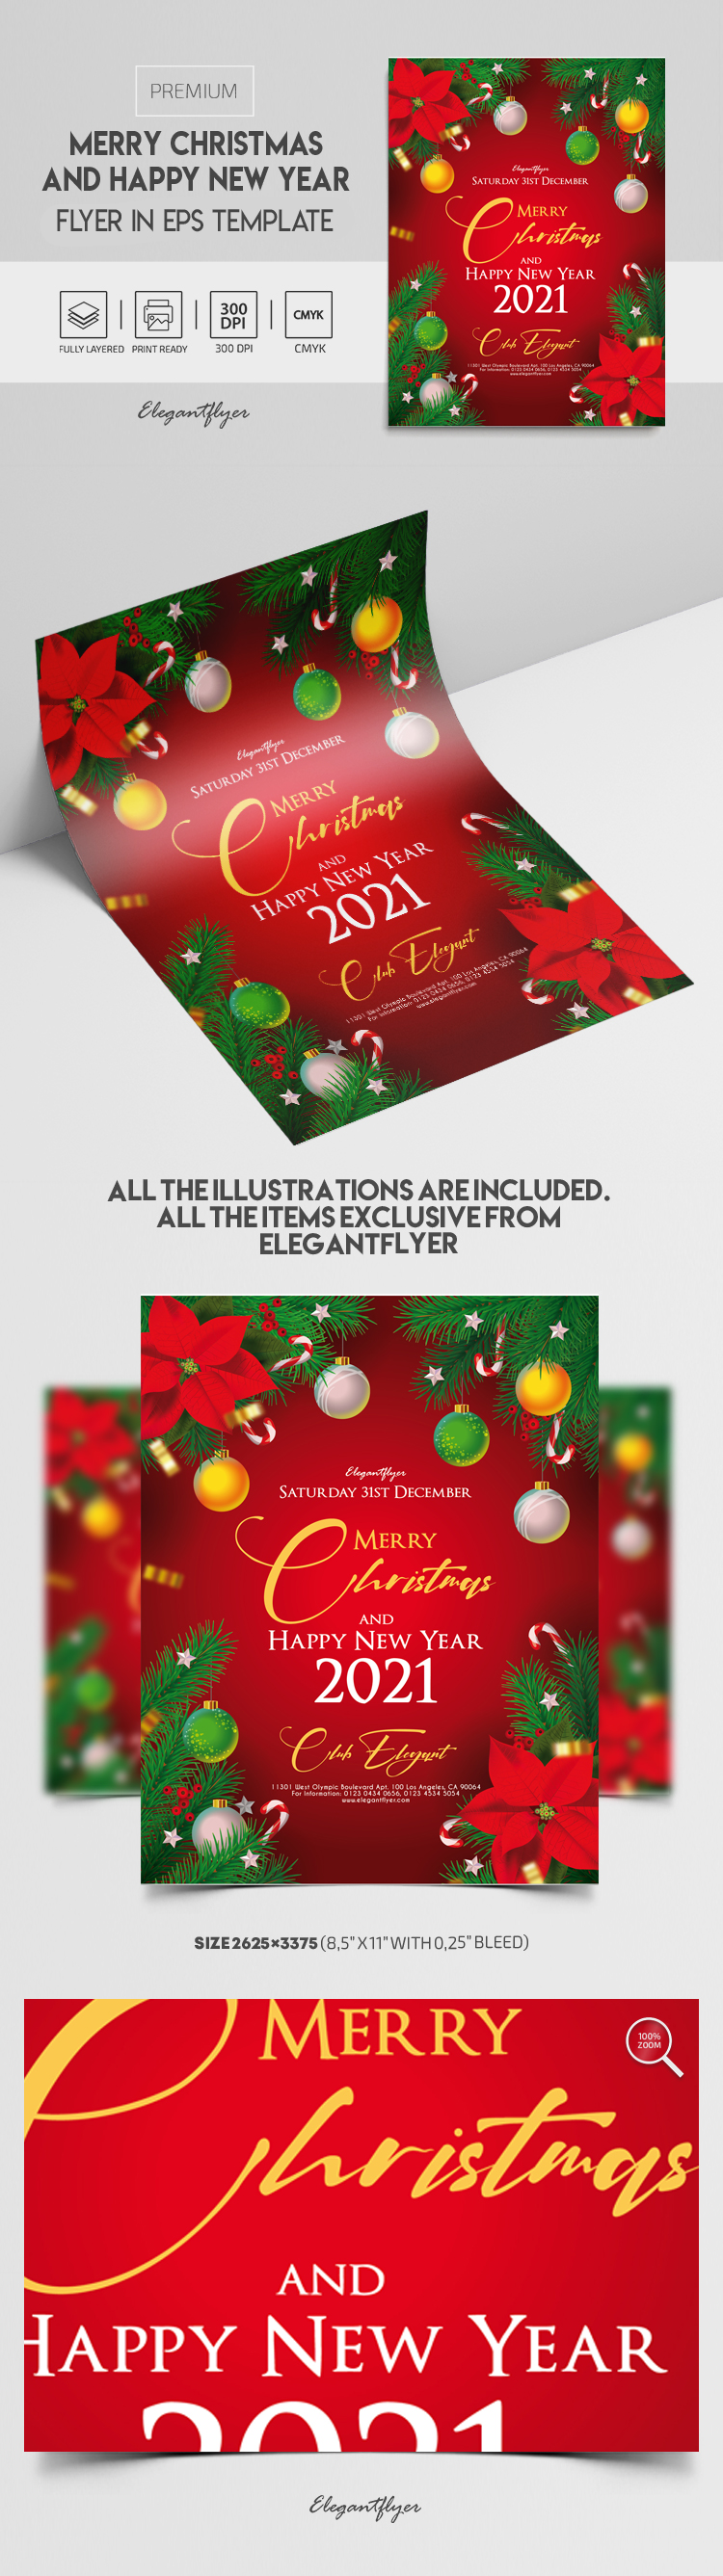 Merry Christmas and Happy New Year – Premium Vector Flyer EPS Template